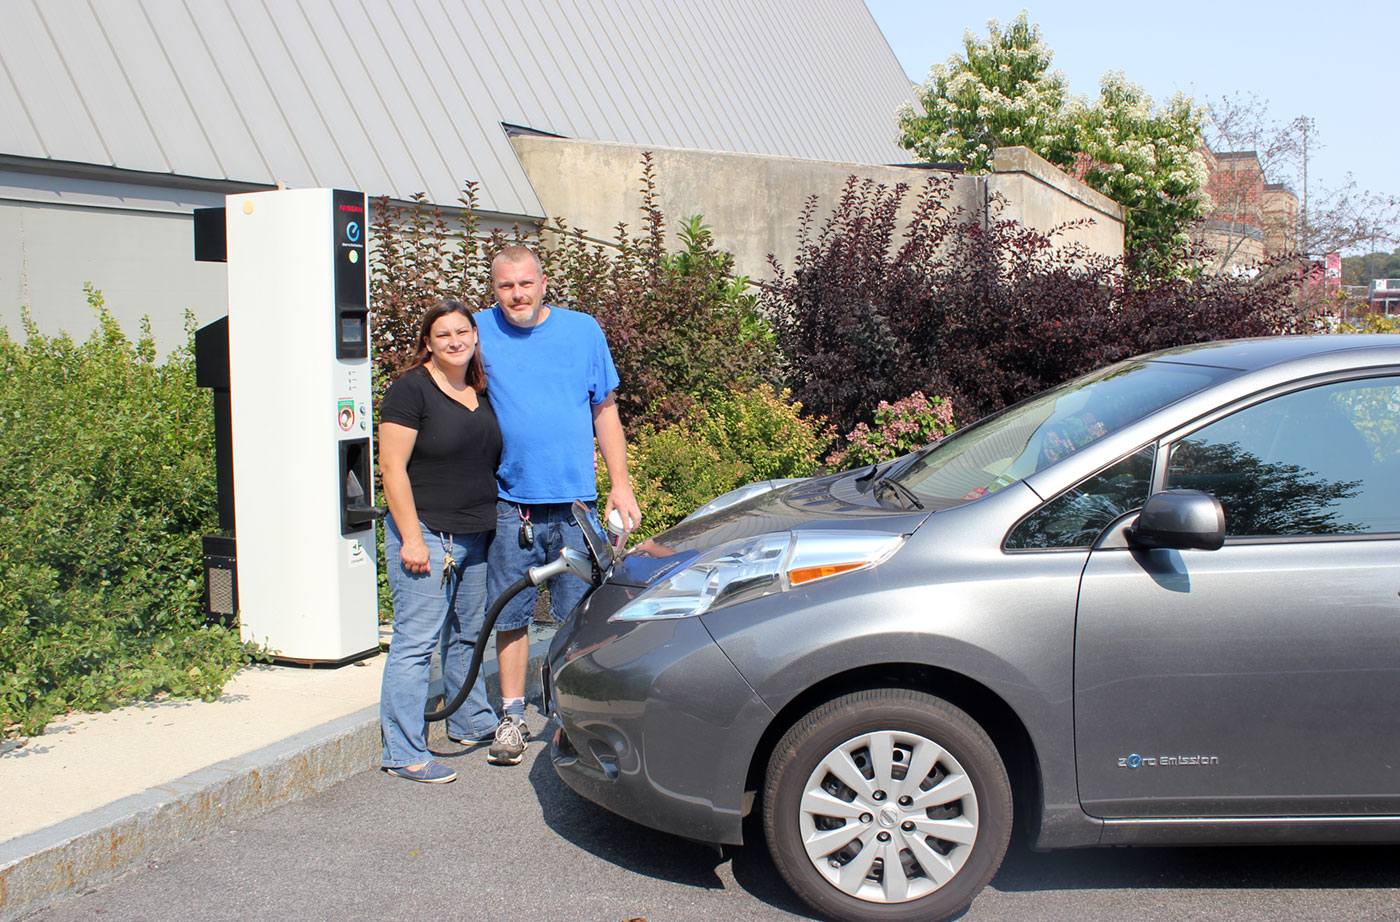 Joe and Tania Hutchins with their EV